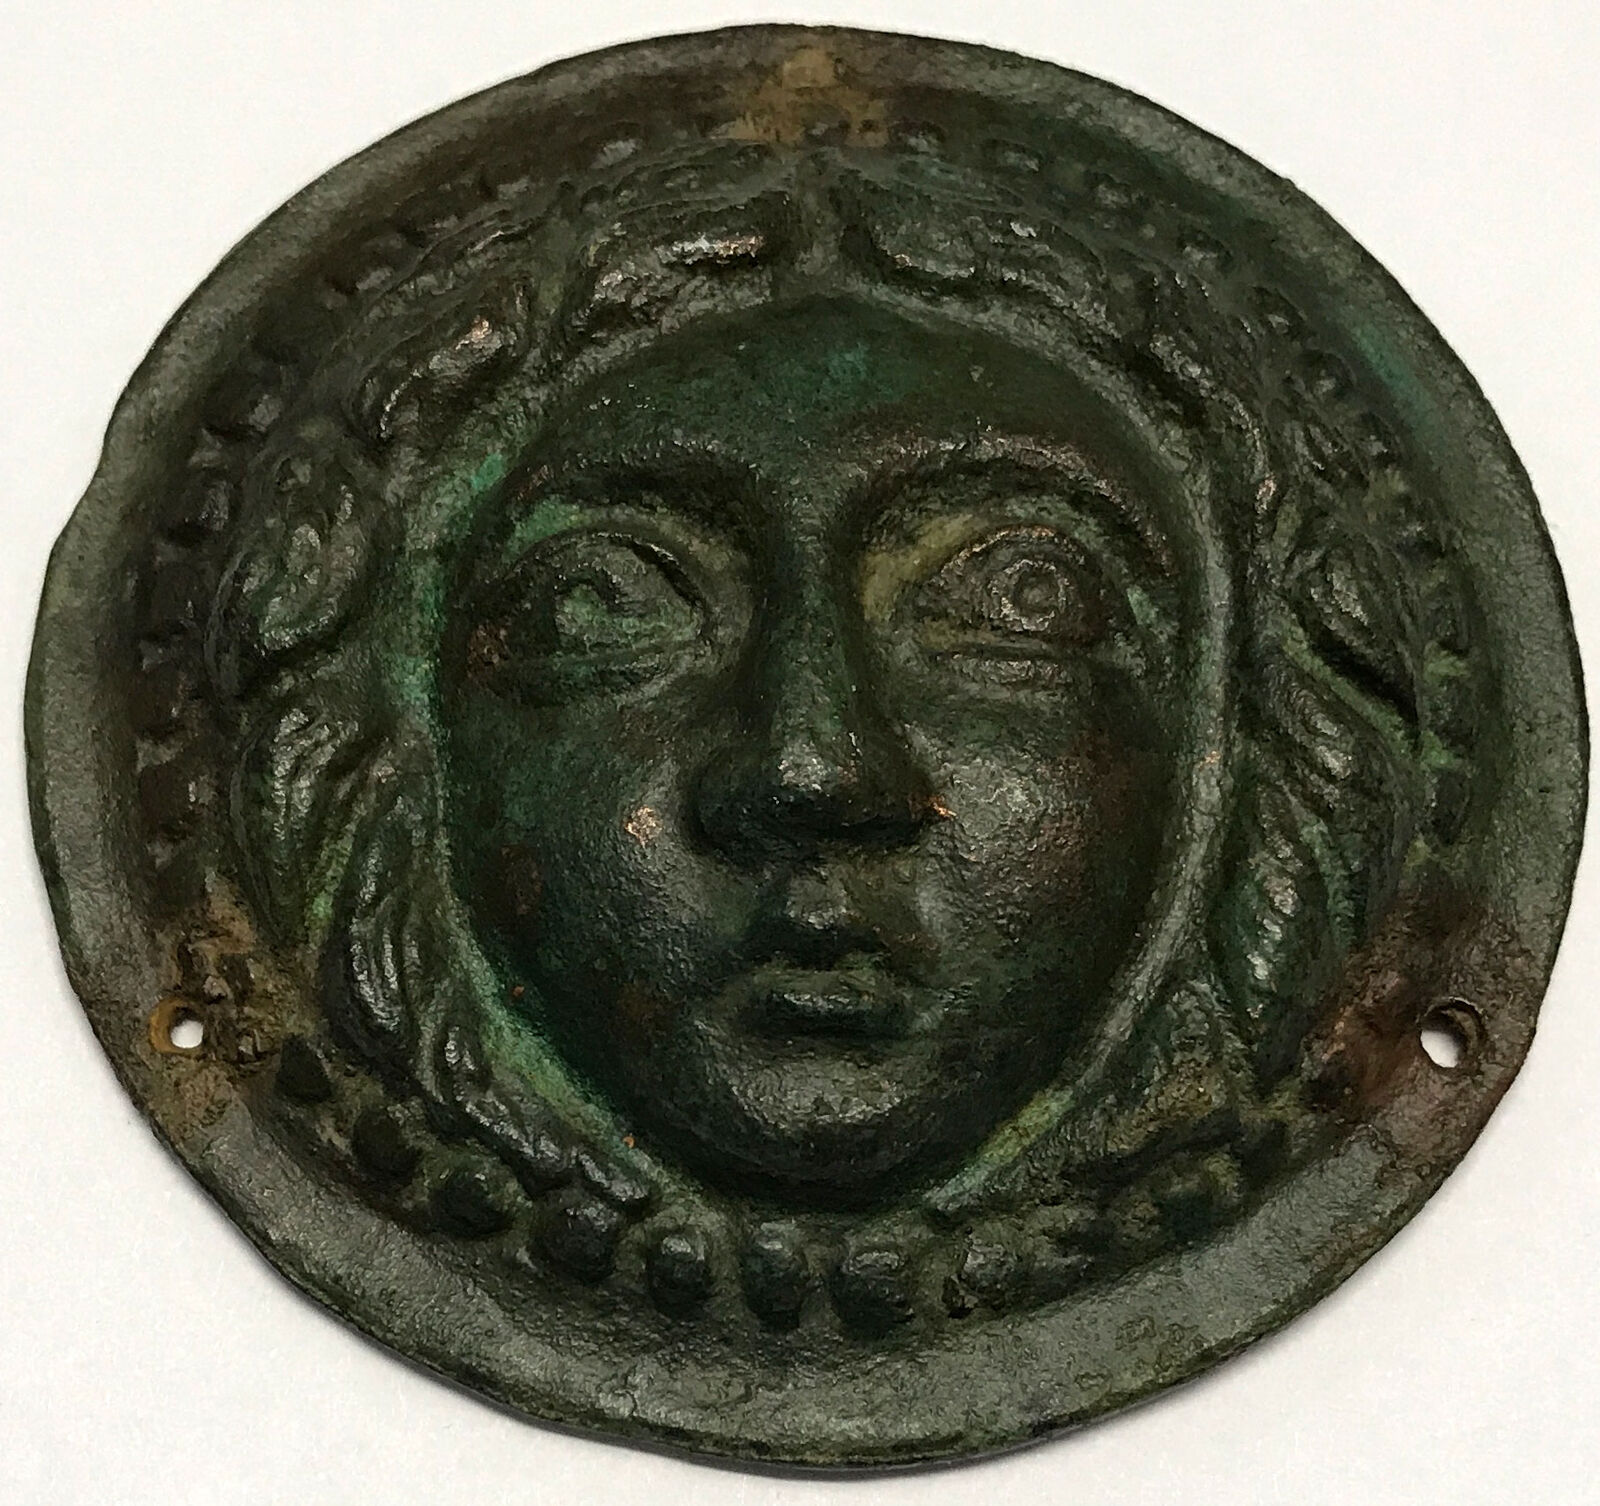 100BC Authentic Ancient Roman MEDUSA GORGON likely for ARMOR Artifact i66776 4